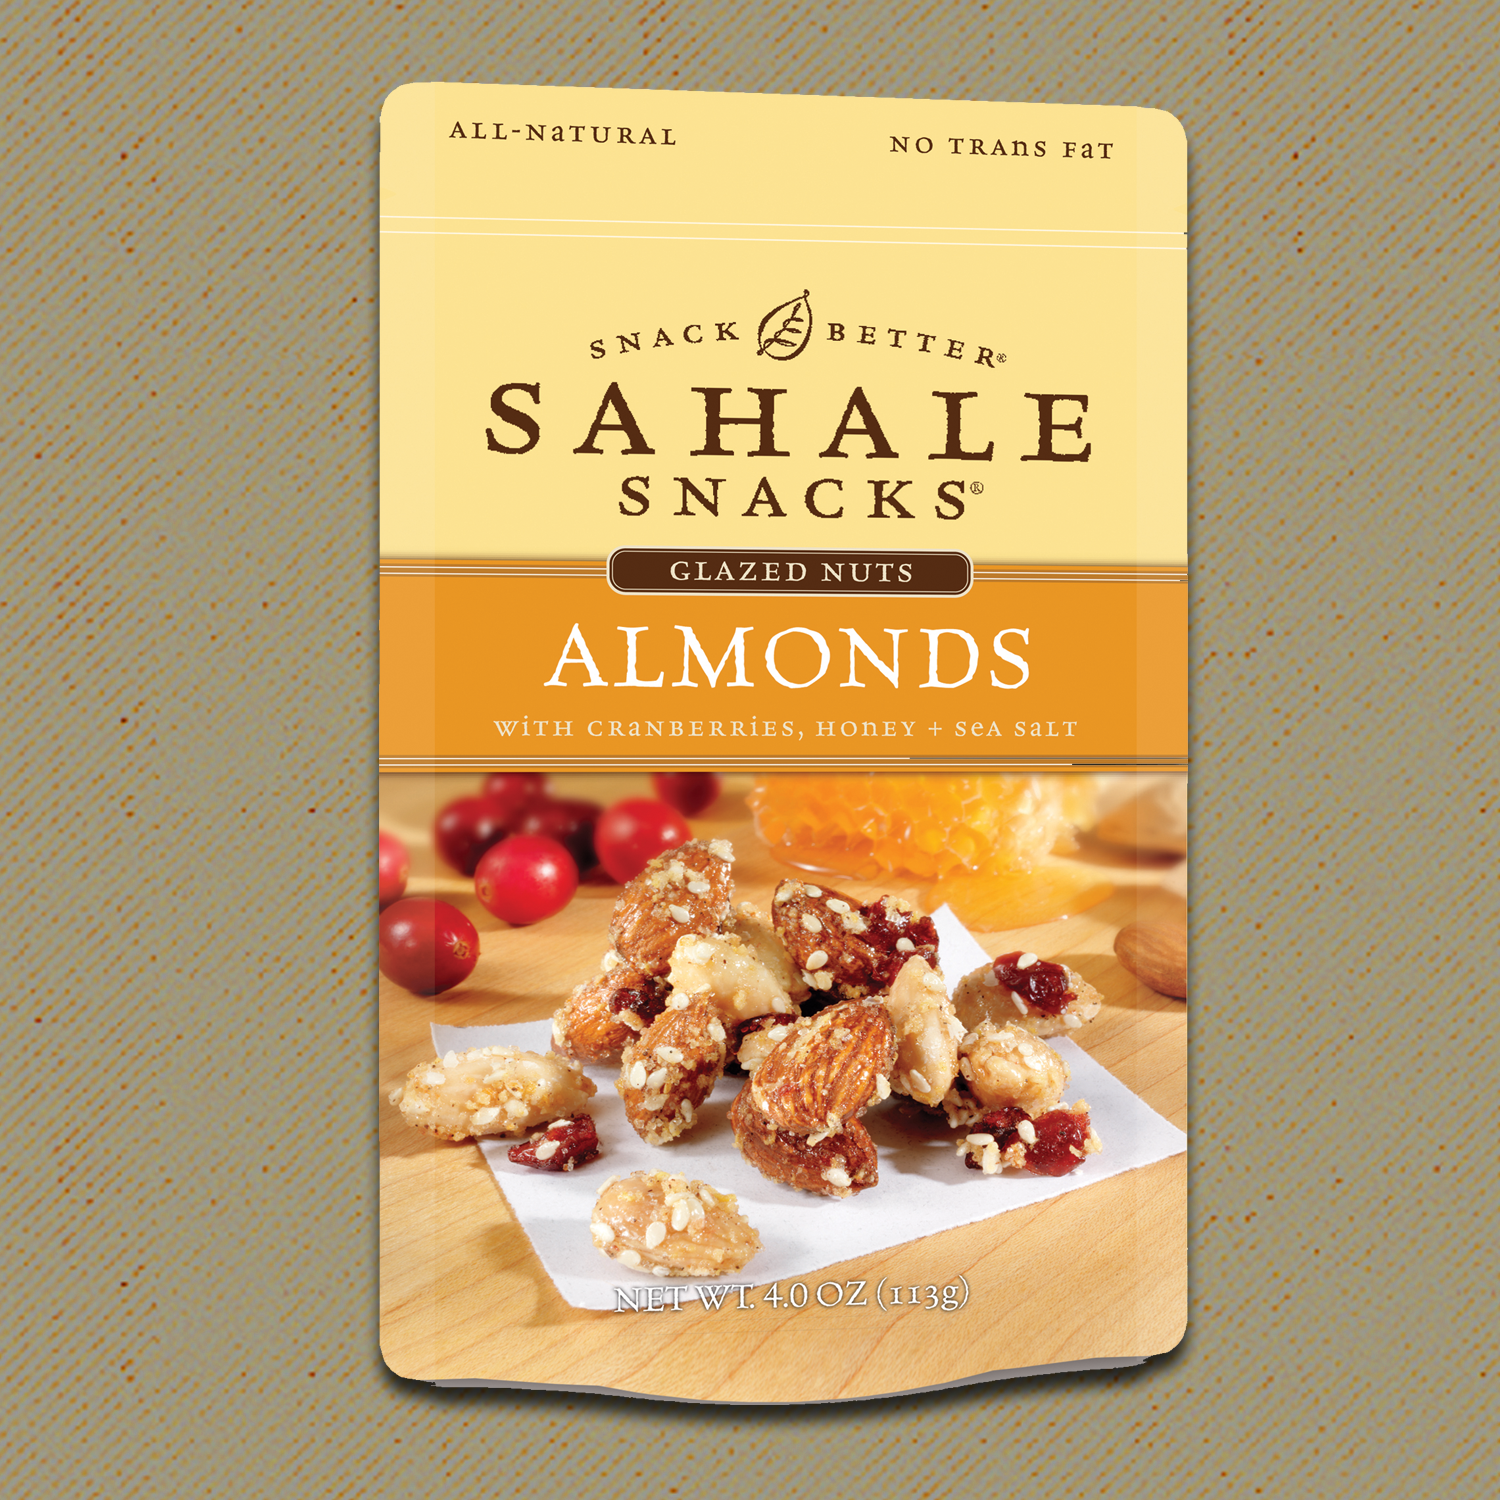 Who says indulgent can't be healthy? Sahale Snacks was founded on a simple idea: take all-natural ingredients, add a dash of culinary magic, and create great tasting snacks. These glazed almonds and are not only delicious but healthy as well!